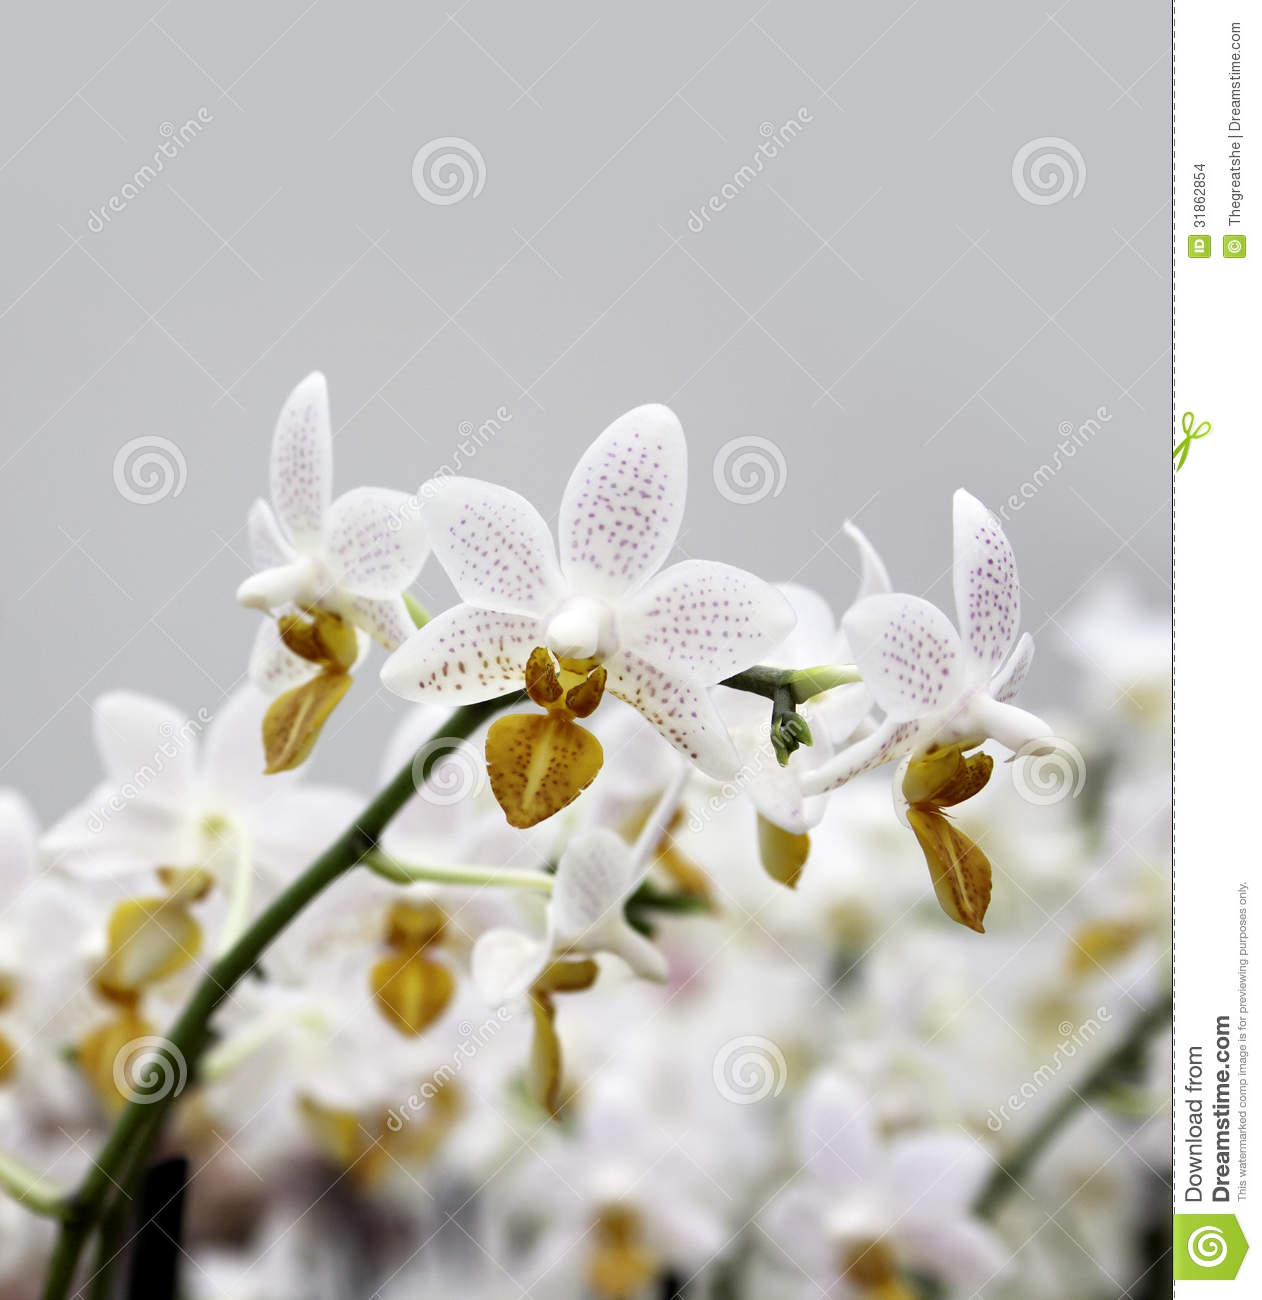 white spotted orchid flower - photo #11